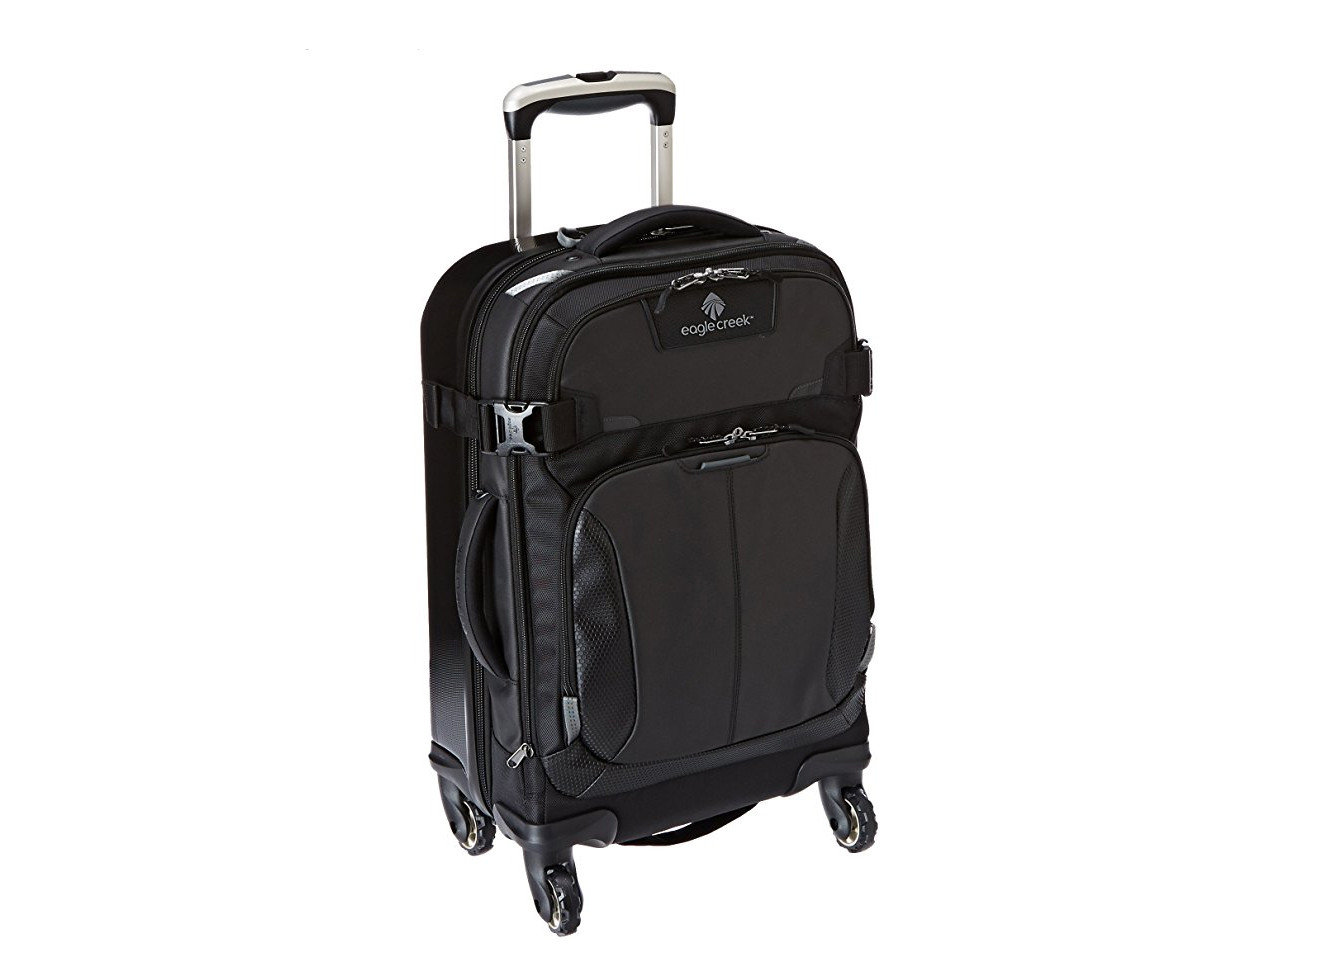 Travel Tech Travel Tips luggage suitcase piece bag hand luggage product accessory